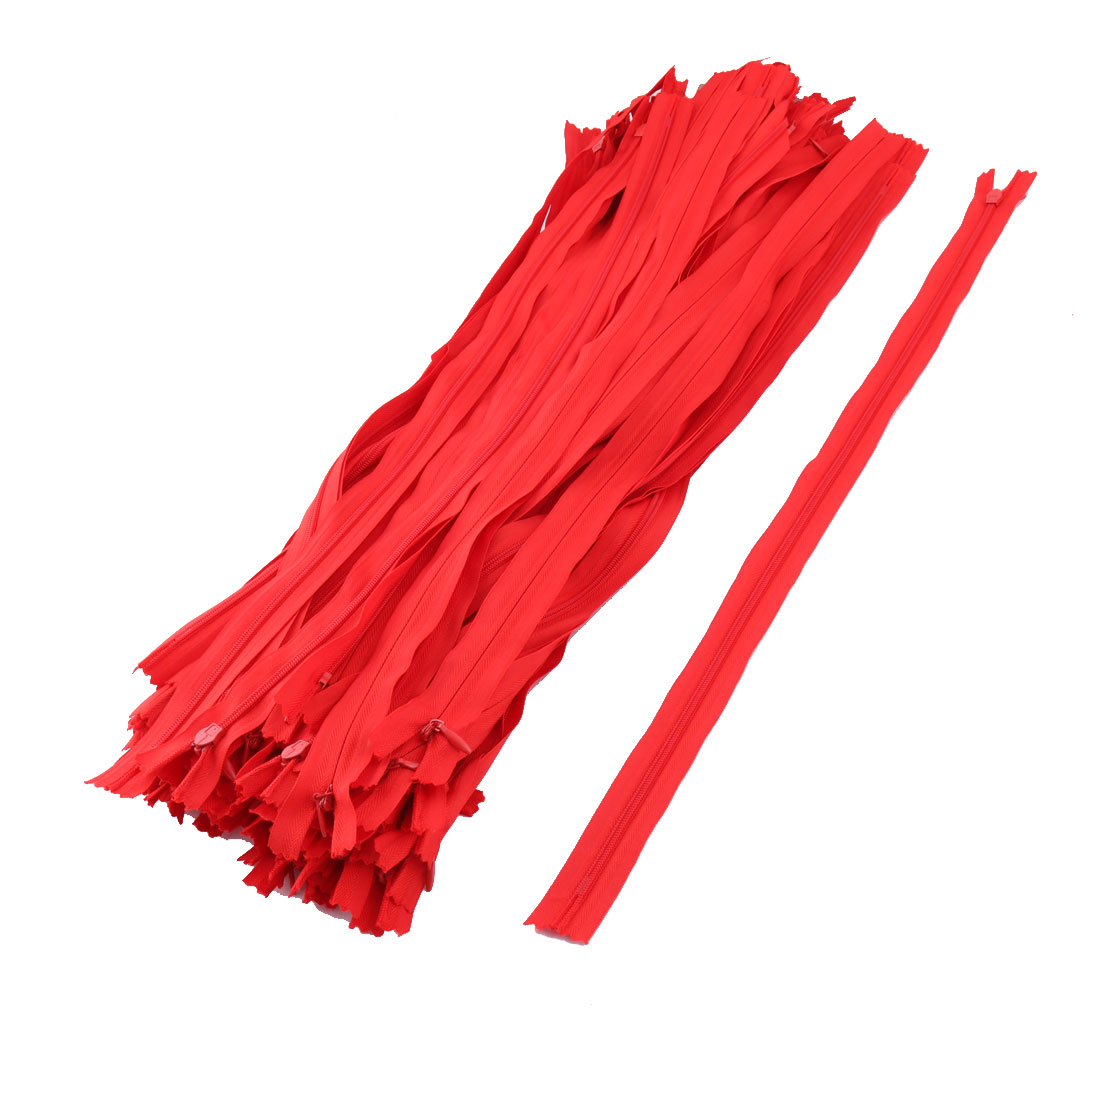 Dress Skirt Pants Invisible Zipper Sewing Craft Tool Red 20 Inch Length 100pcs